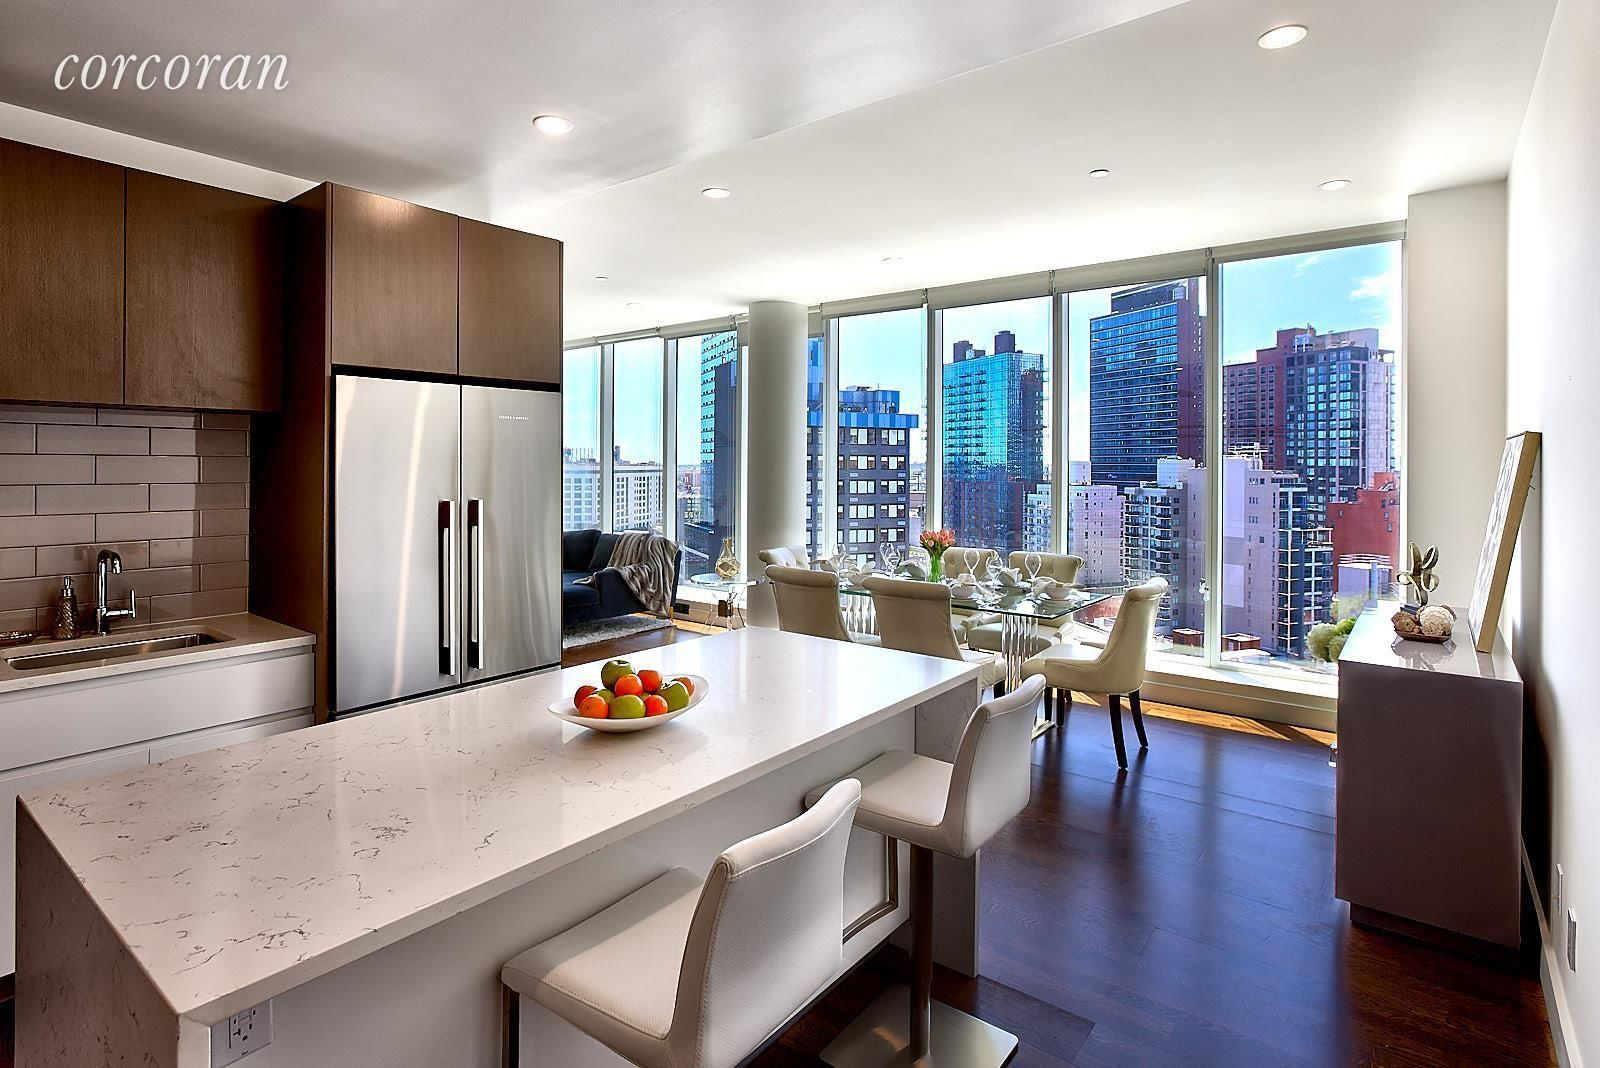 Apartment for sale at 27-17 42nd Road, Apt 11E